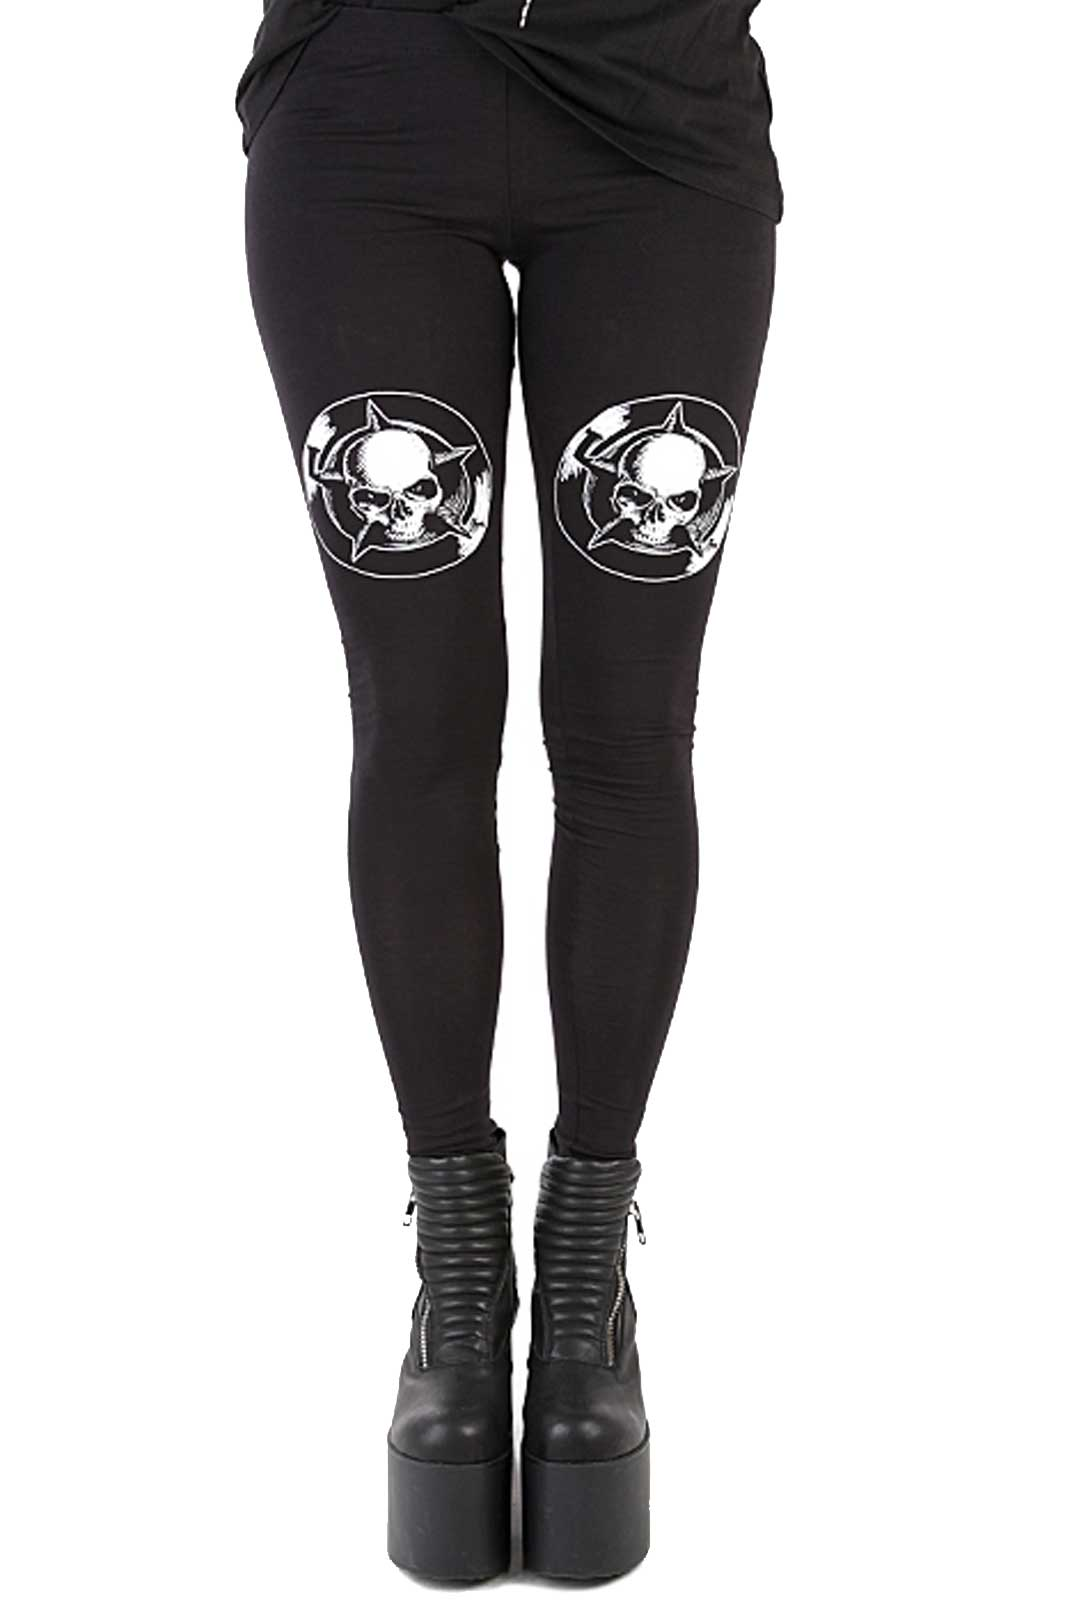 shock store shock leggings